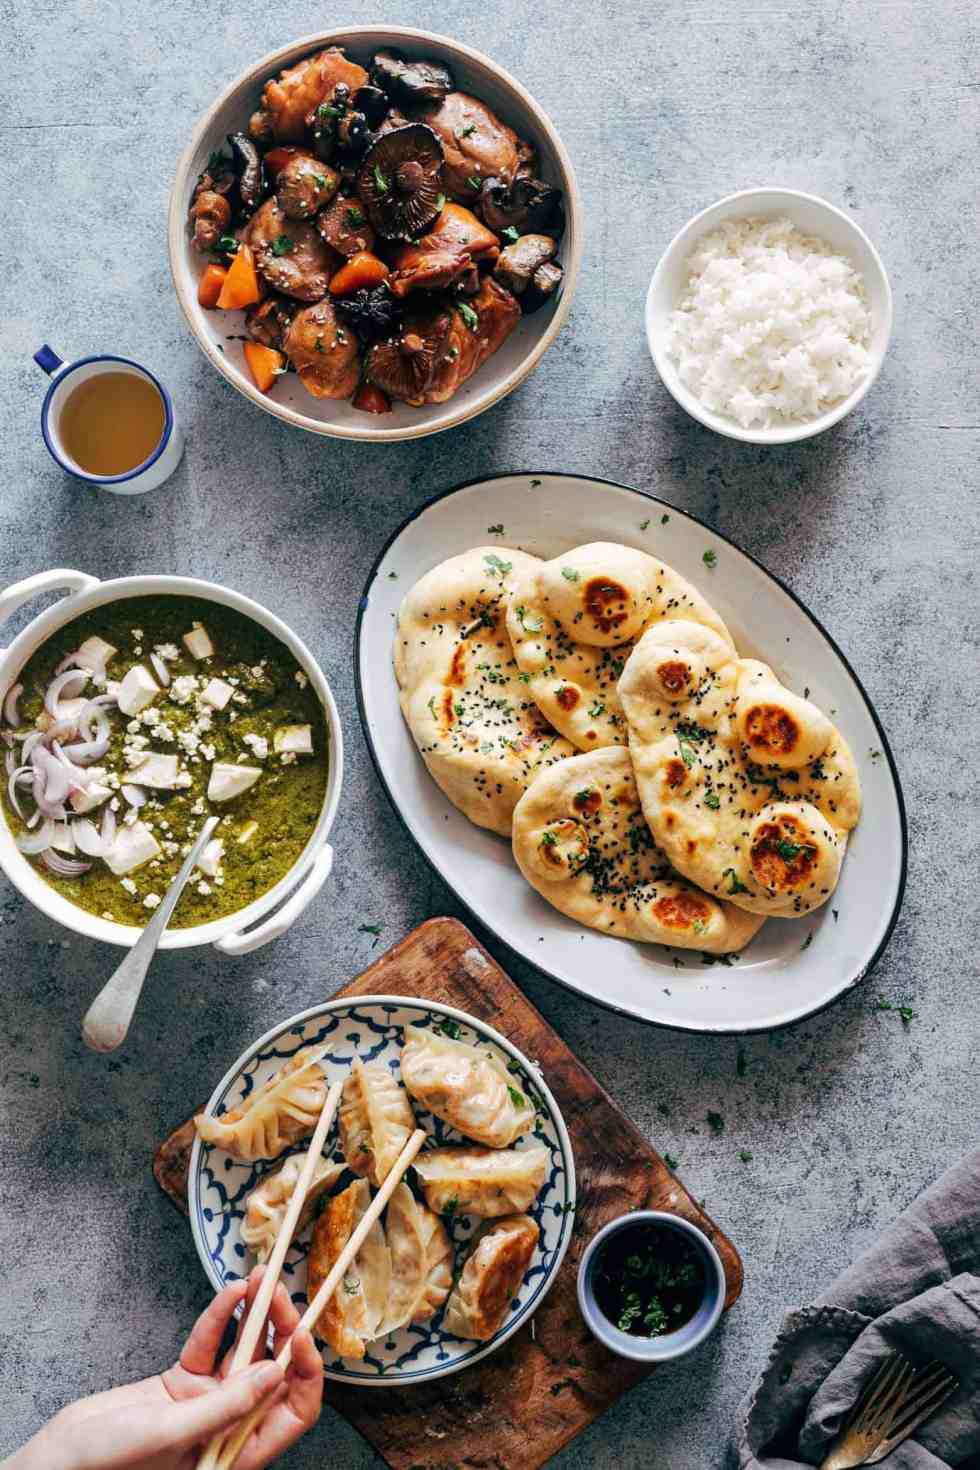 These vegetarian gyoza potstickers are stuffed with a delicious mixture of carrot, shiitake mushrooms and paneer and are insanely ease to make! Don't be intimidated because I have step by step instructions for you to make them at home.